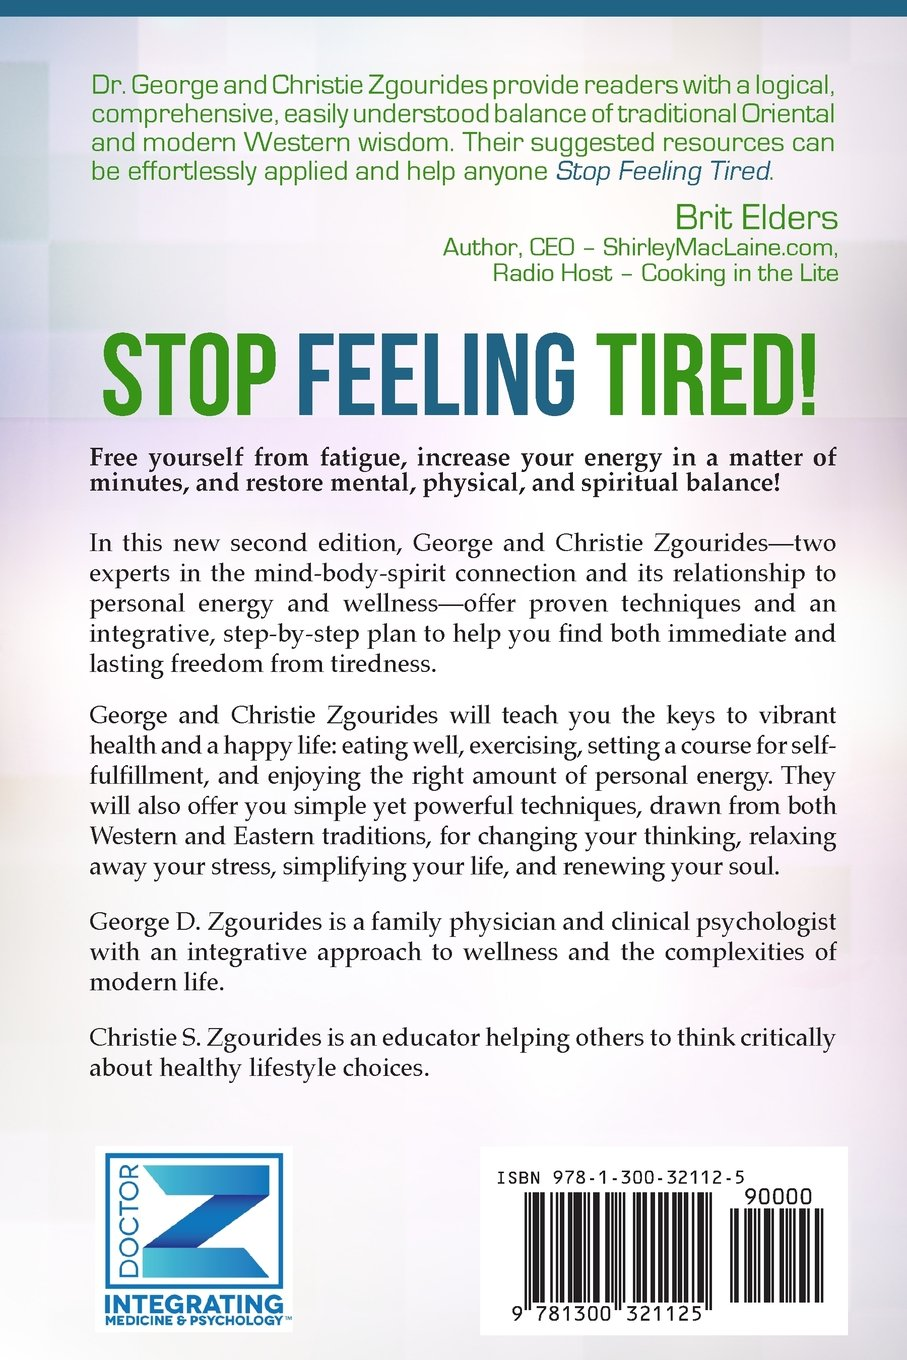 Stop Feeling Tired! 10 Mind-Body-Spirit Steps to Fight Fatigue and Feel  Your Best - Second Edition: George D. Zgourides: 9781300321125: Amazon.com:  Books